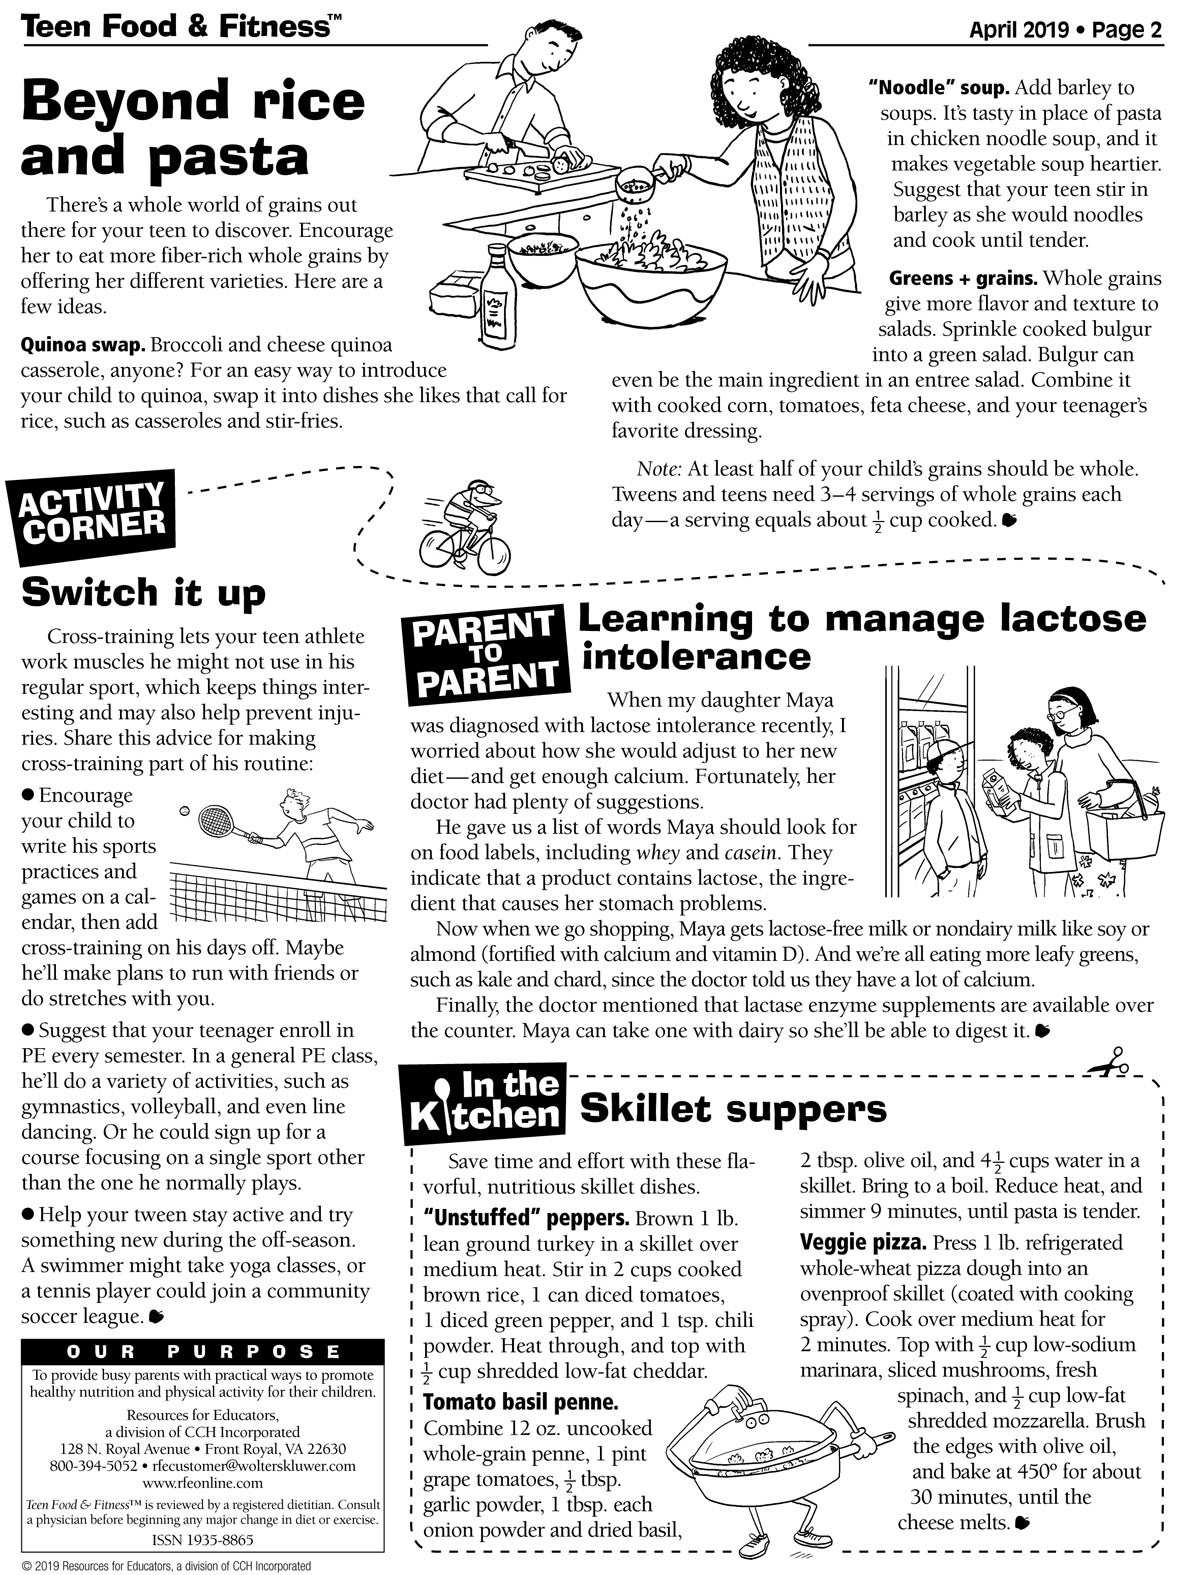 Food and Fitness April newsletter page 2